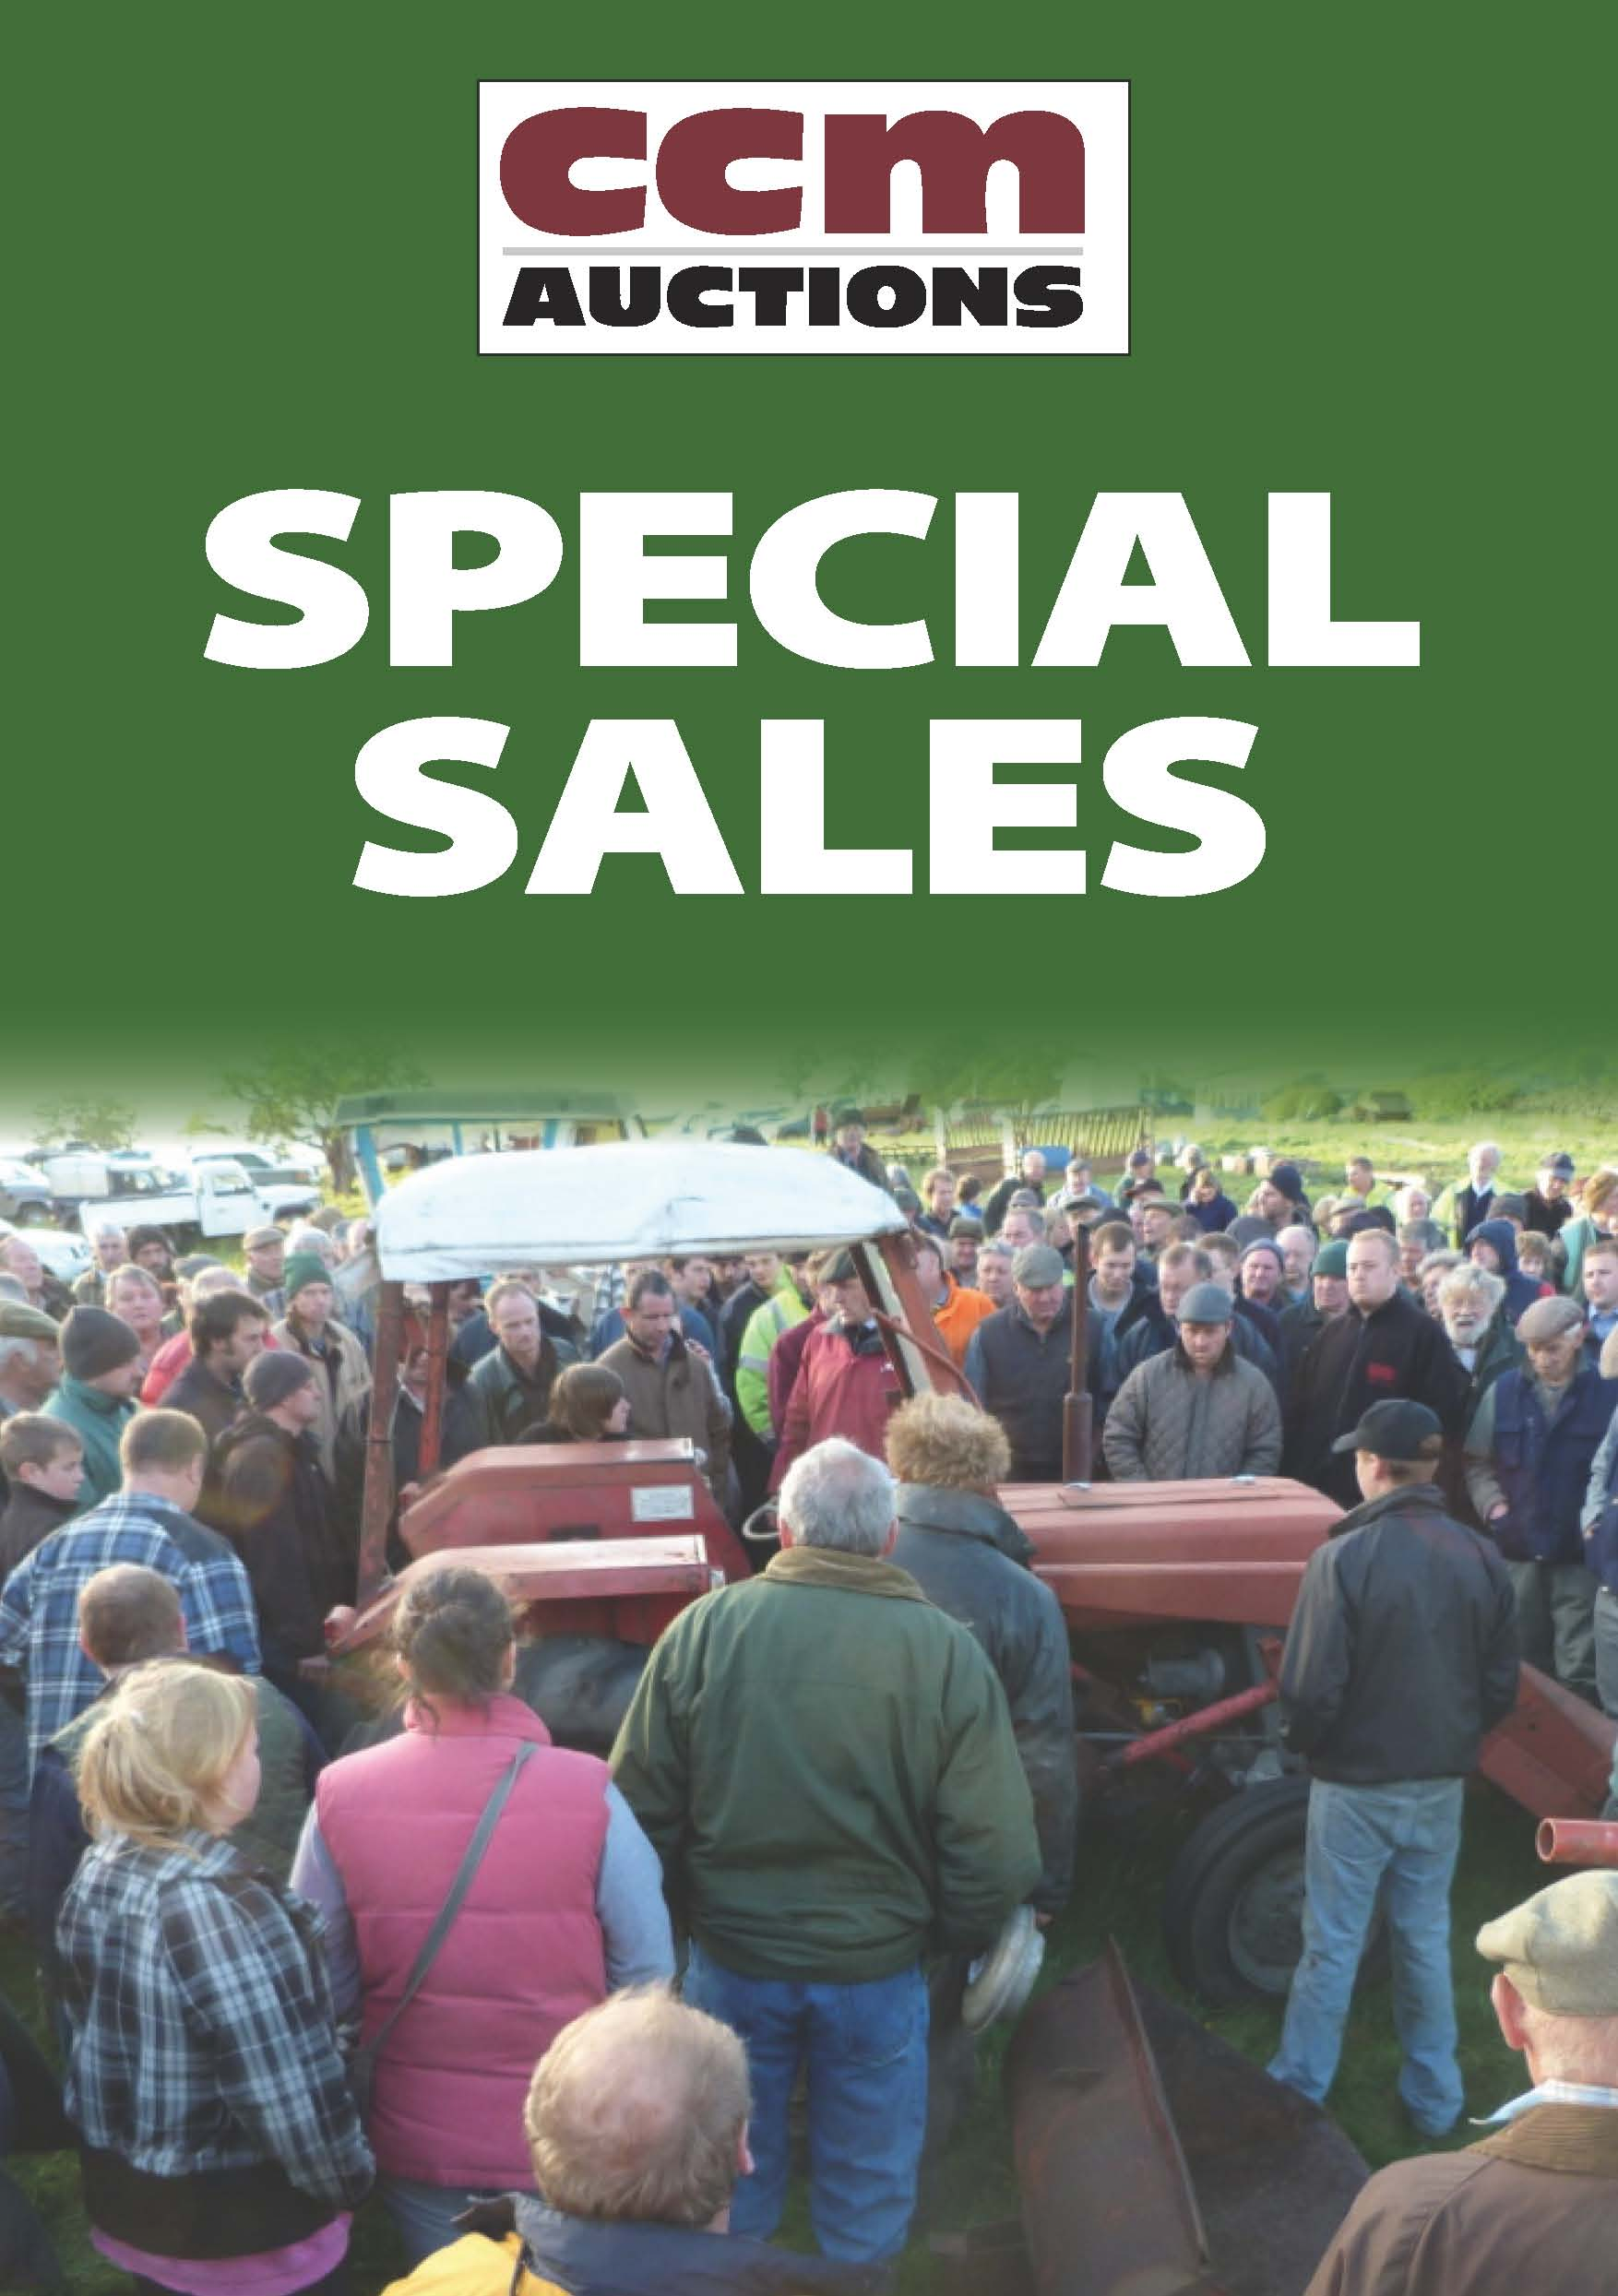 LEEMING FARM SALE - THURSDAY 22ND SEPTEMBER 2016